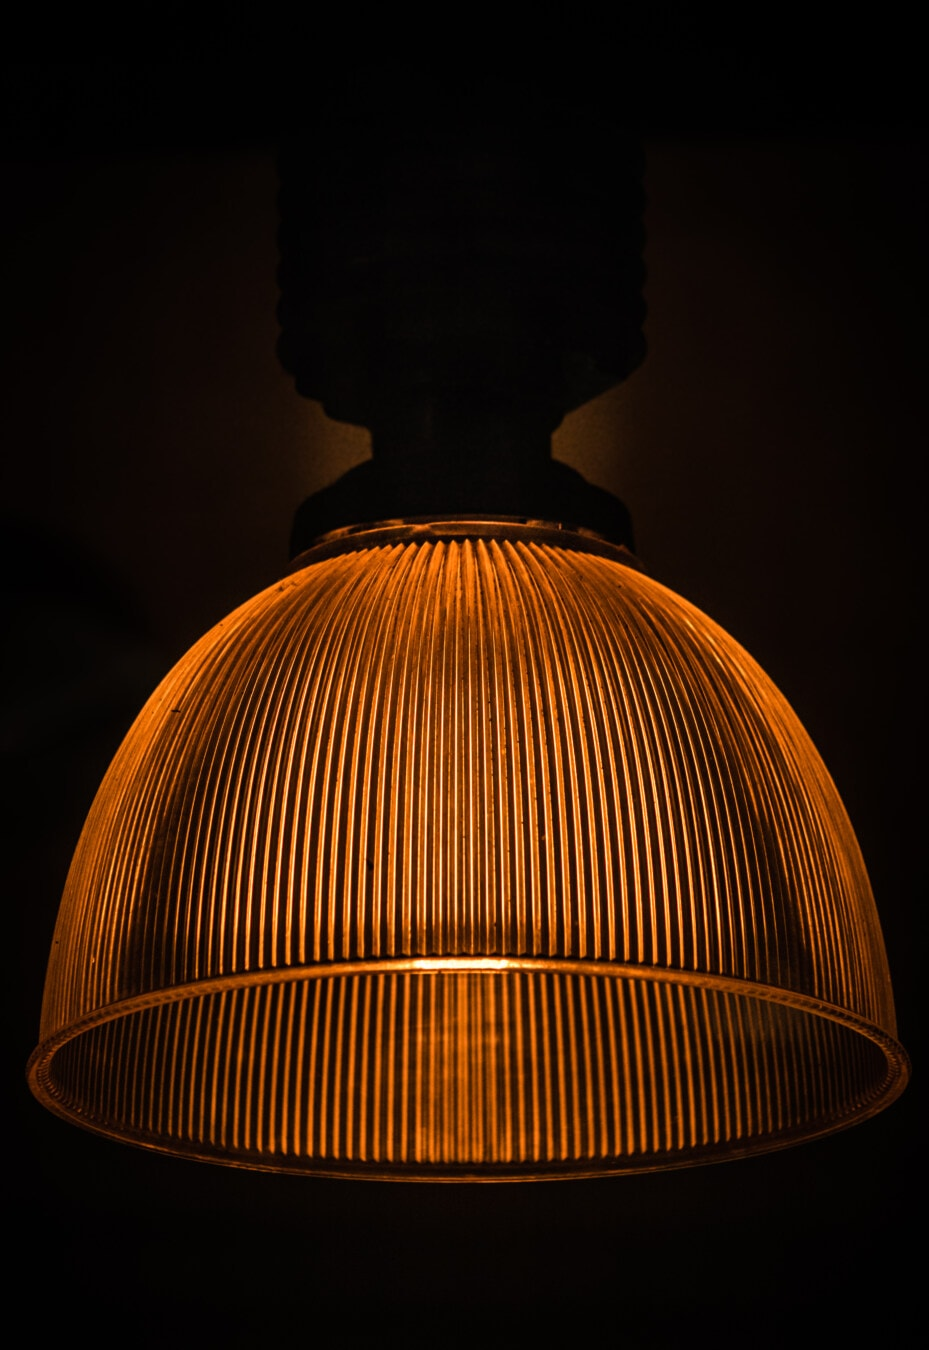 classic, light brown, chandelier, round, old style, vintage, shadow, darkness, close-up, shade